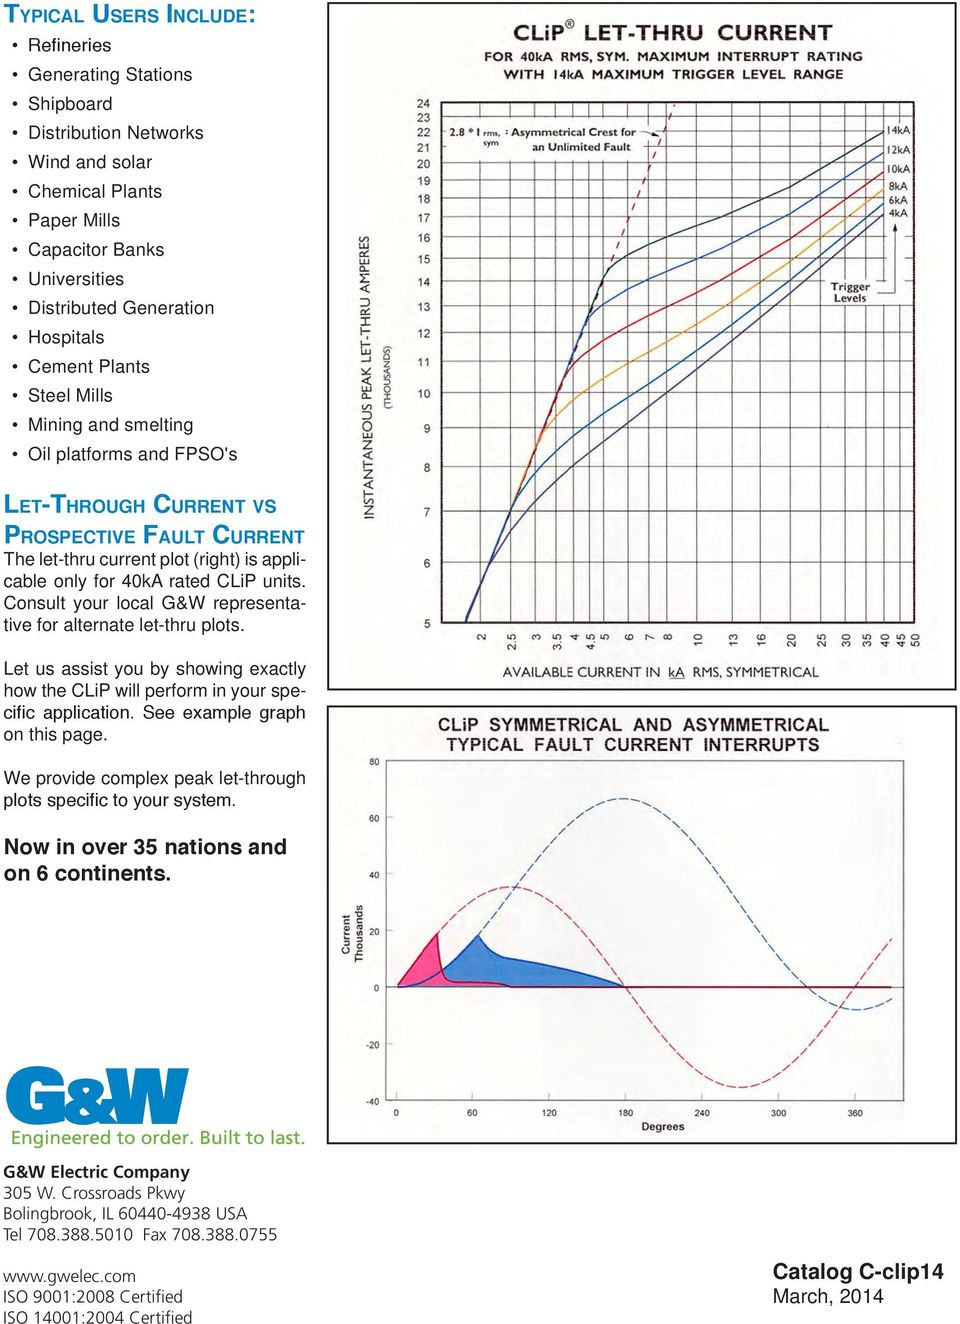 Consult your local G&W representative for alternate let-thru plots. Let us assist you by showing exactly how the CLiP will perform in your specific application. See example graph on this page.